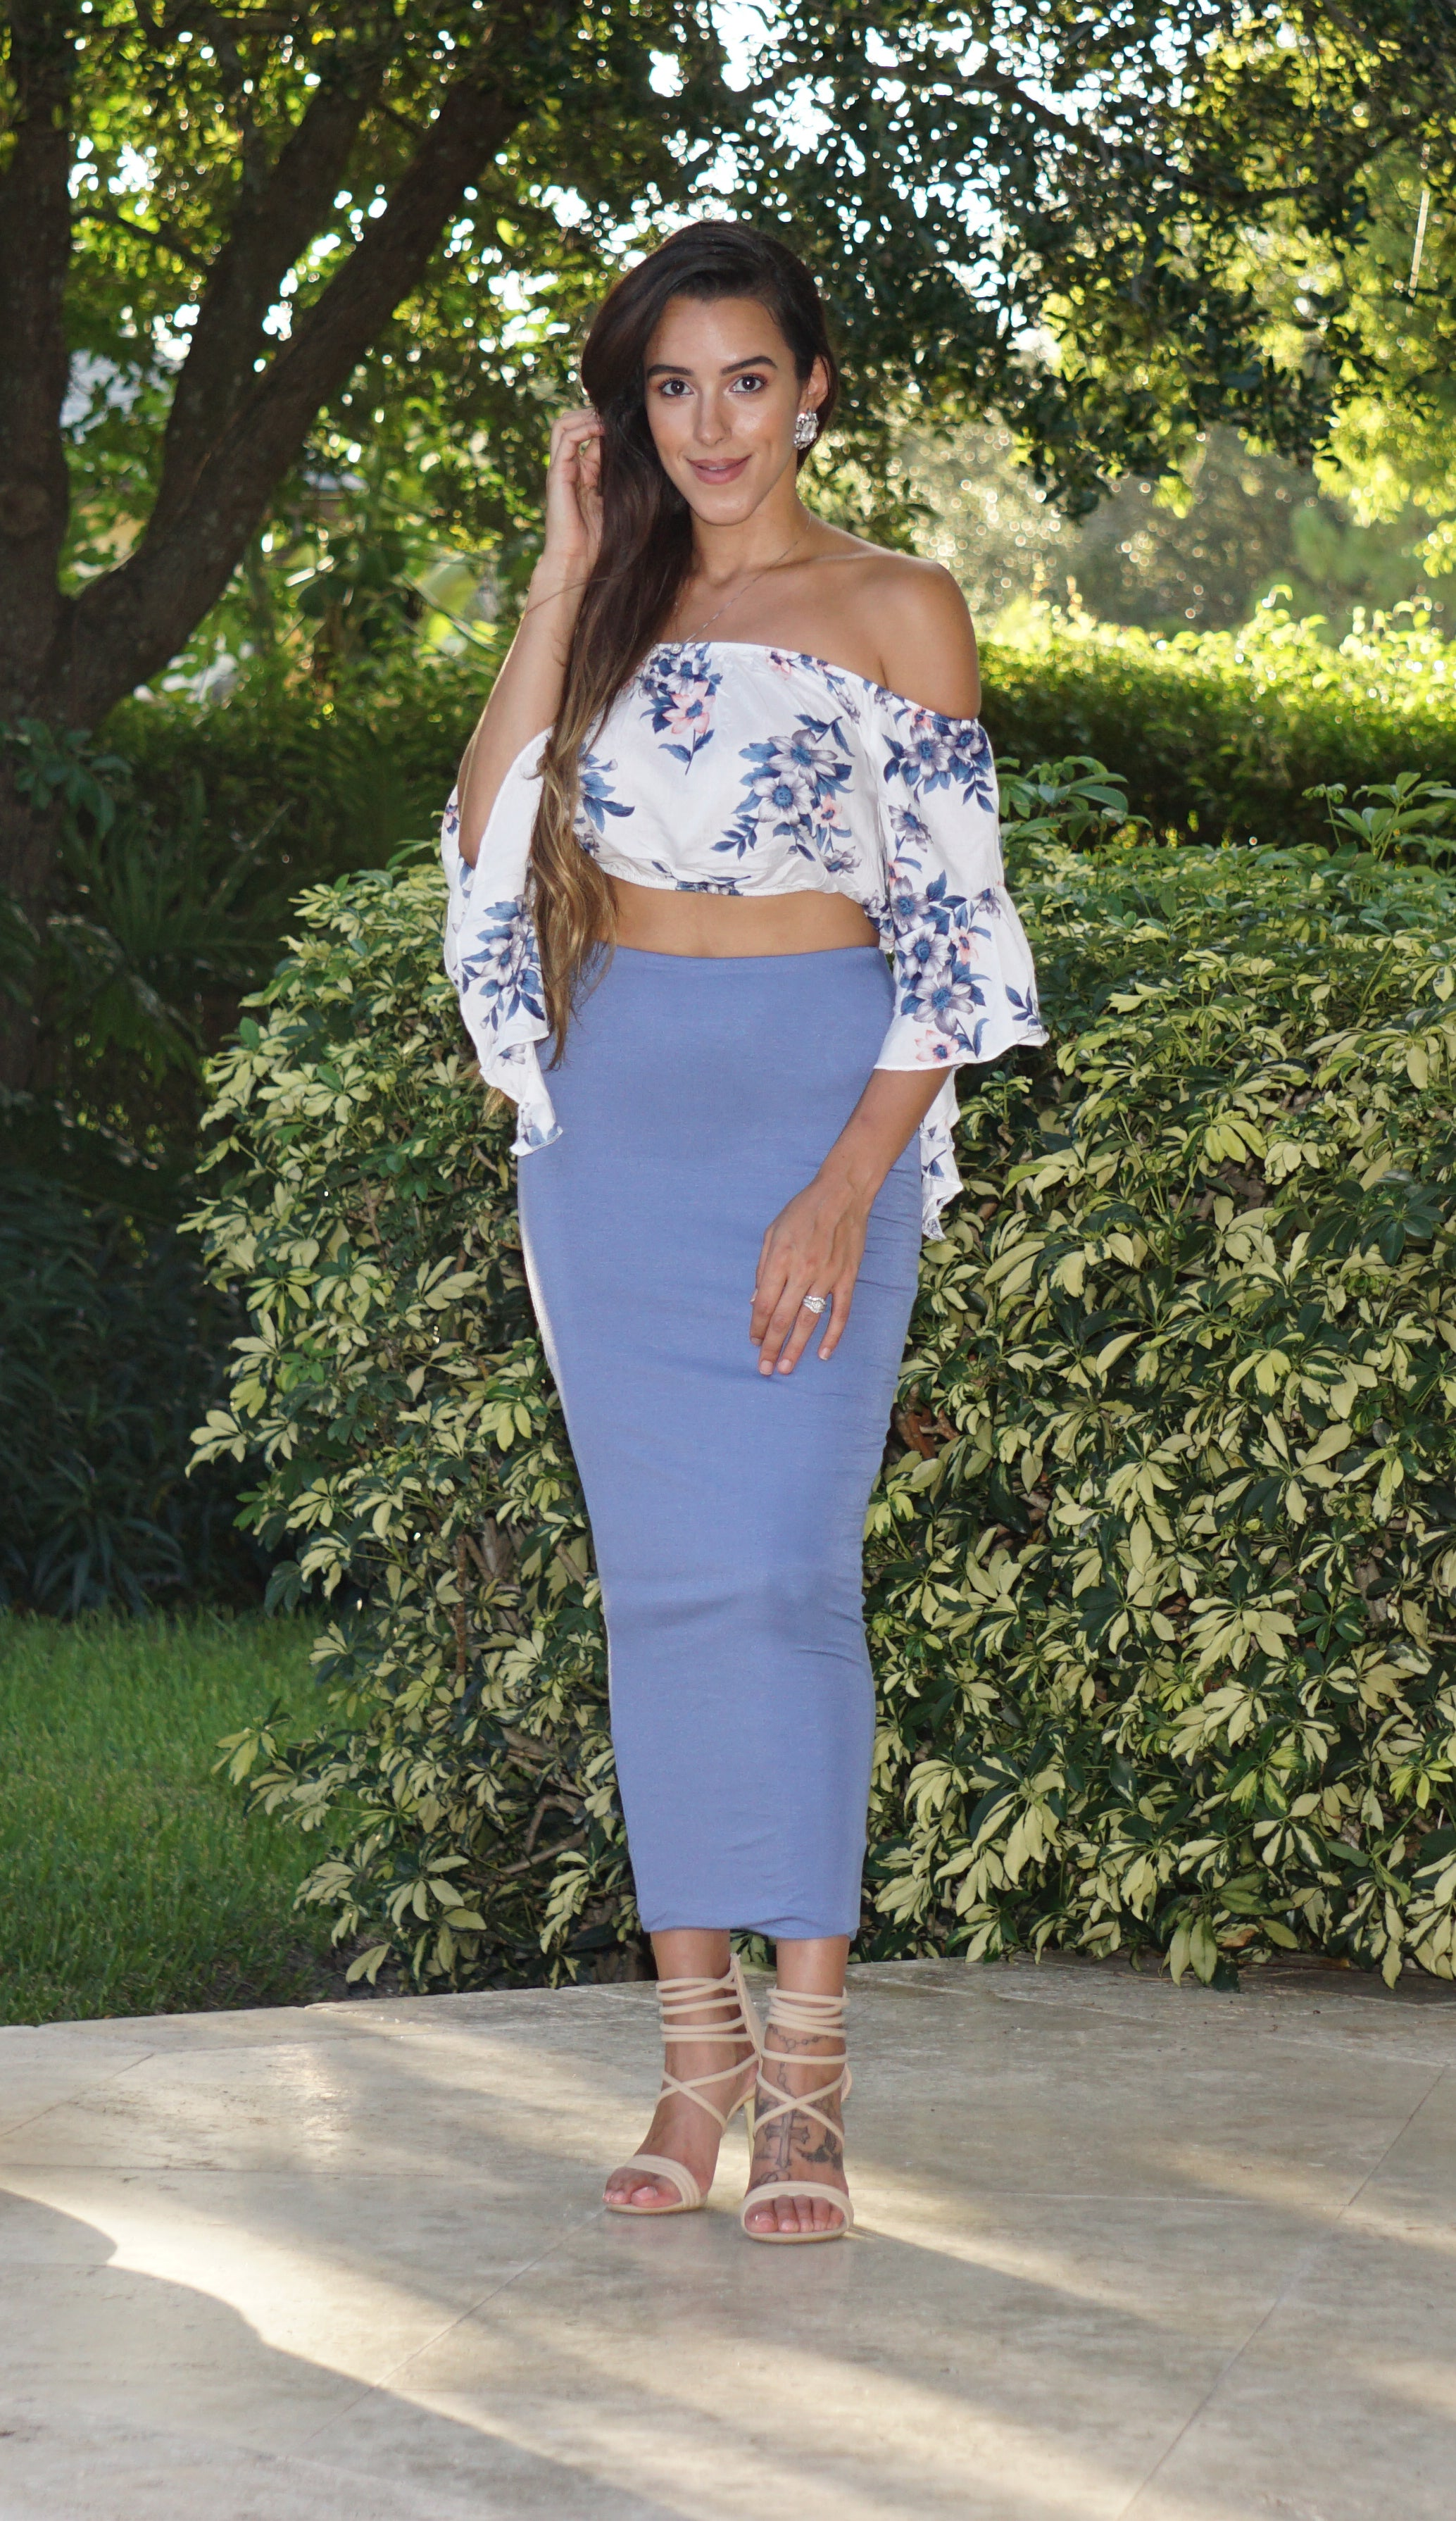 to wear - Waisted high pencil skirt and crop top video